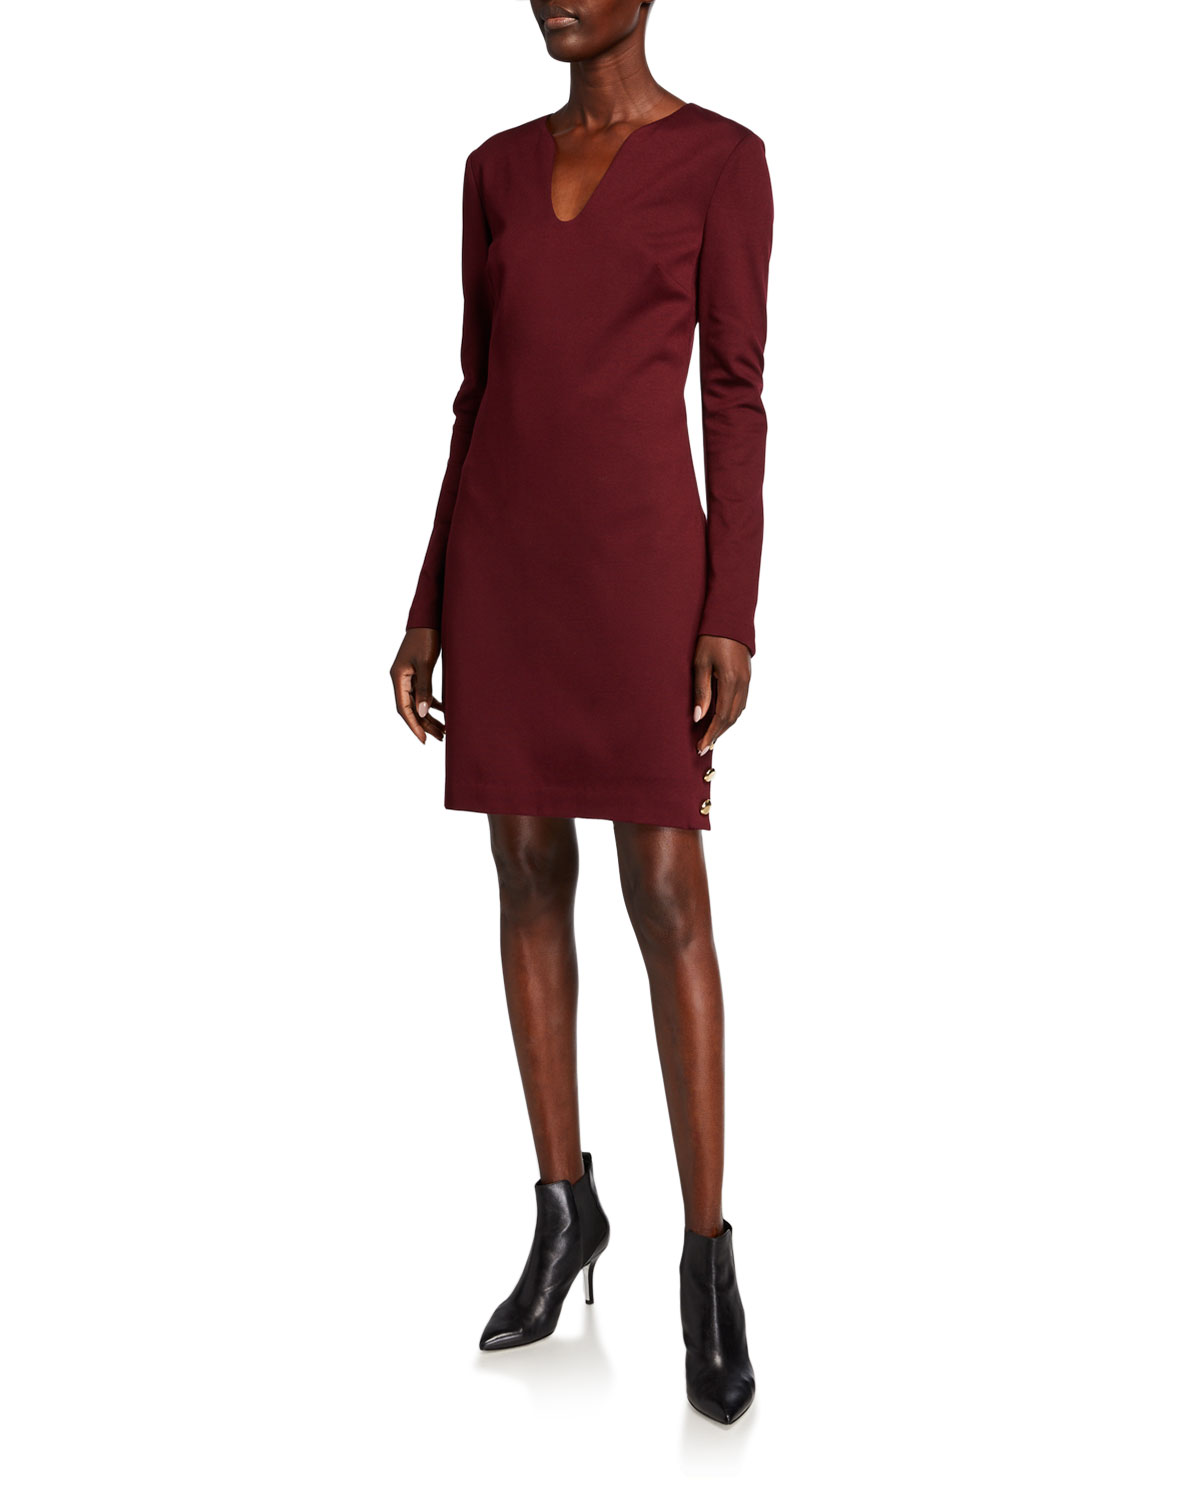 Trina Turk Dresses SHIRAZ V-NECK LONG-SLEEVE PONTE DRESS W/ BUTTON ACCENTS